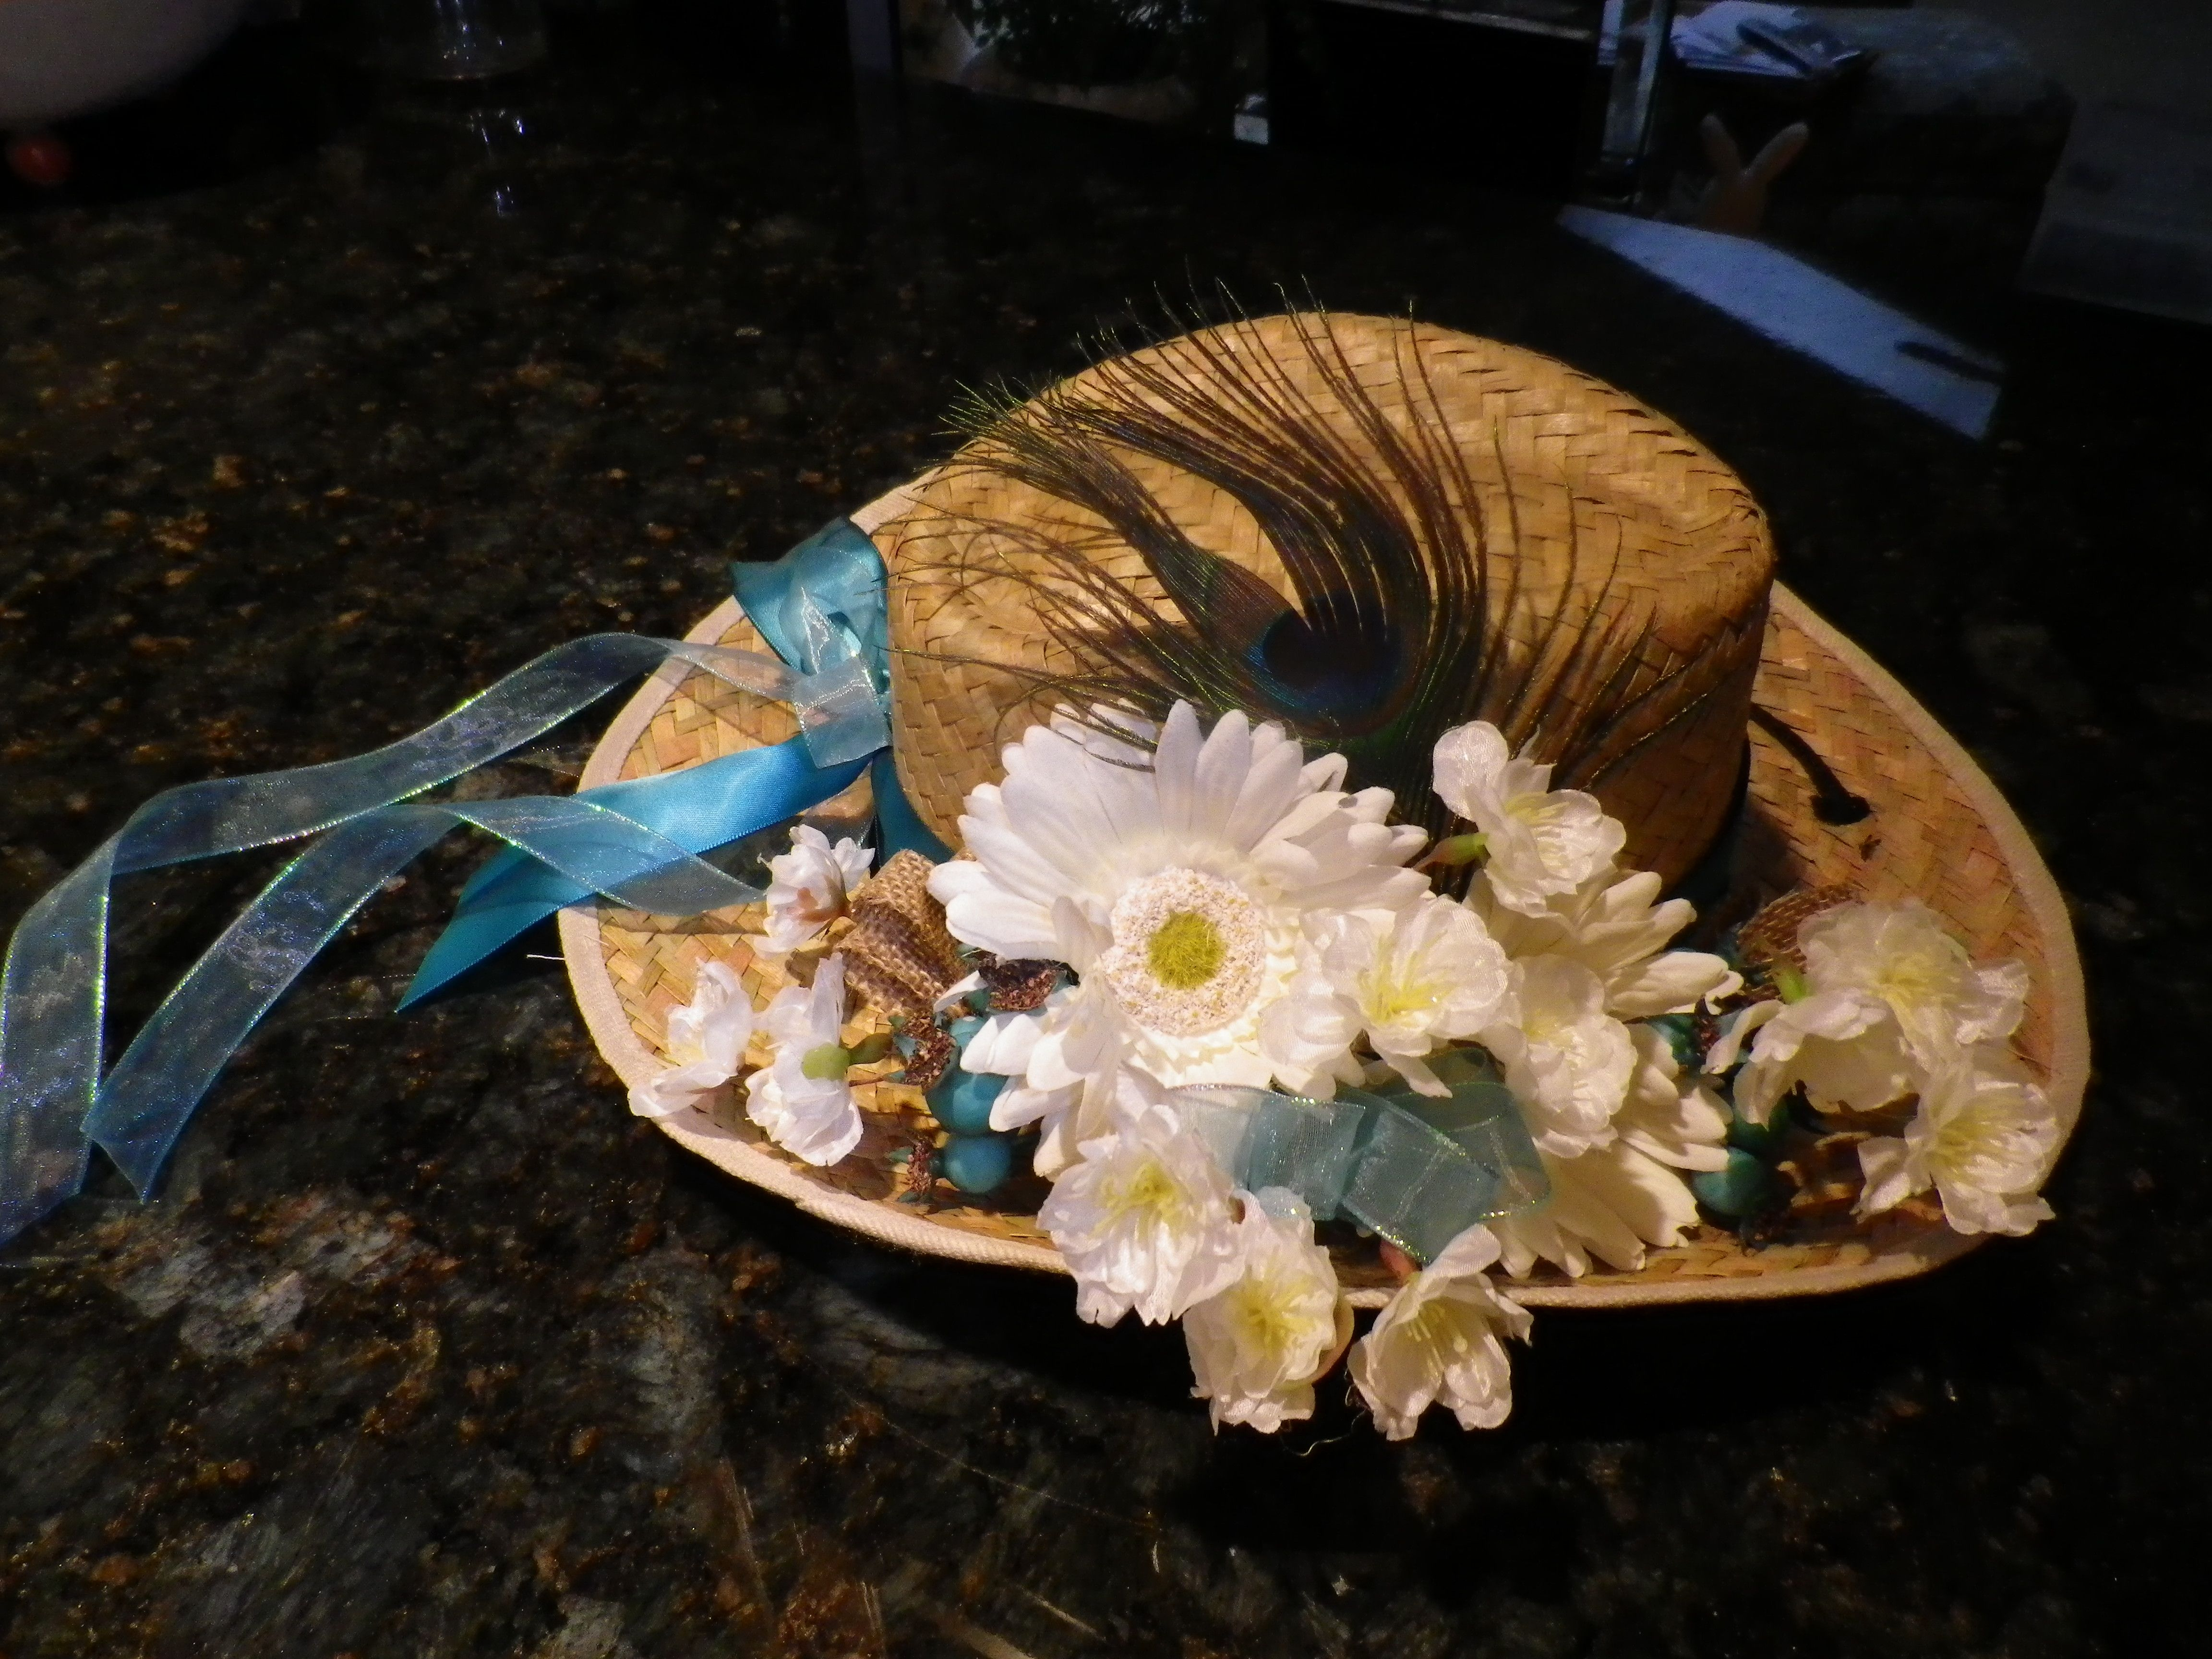 45c7986a7 These decorated cowboy hats served as centerpieces at a western ...